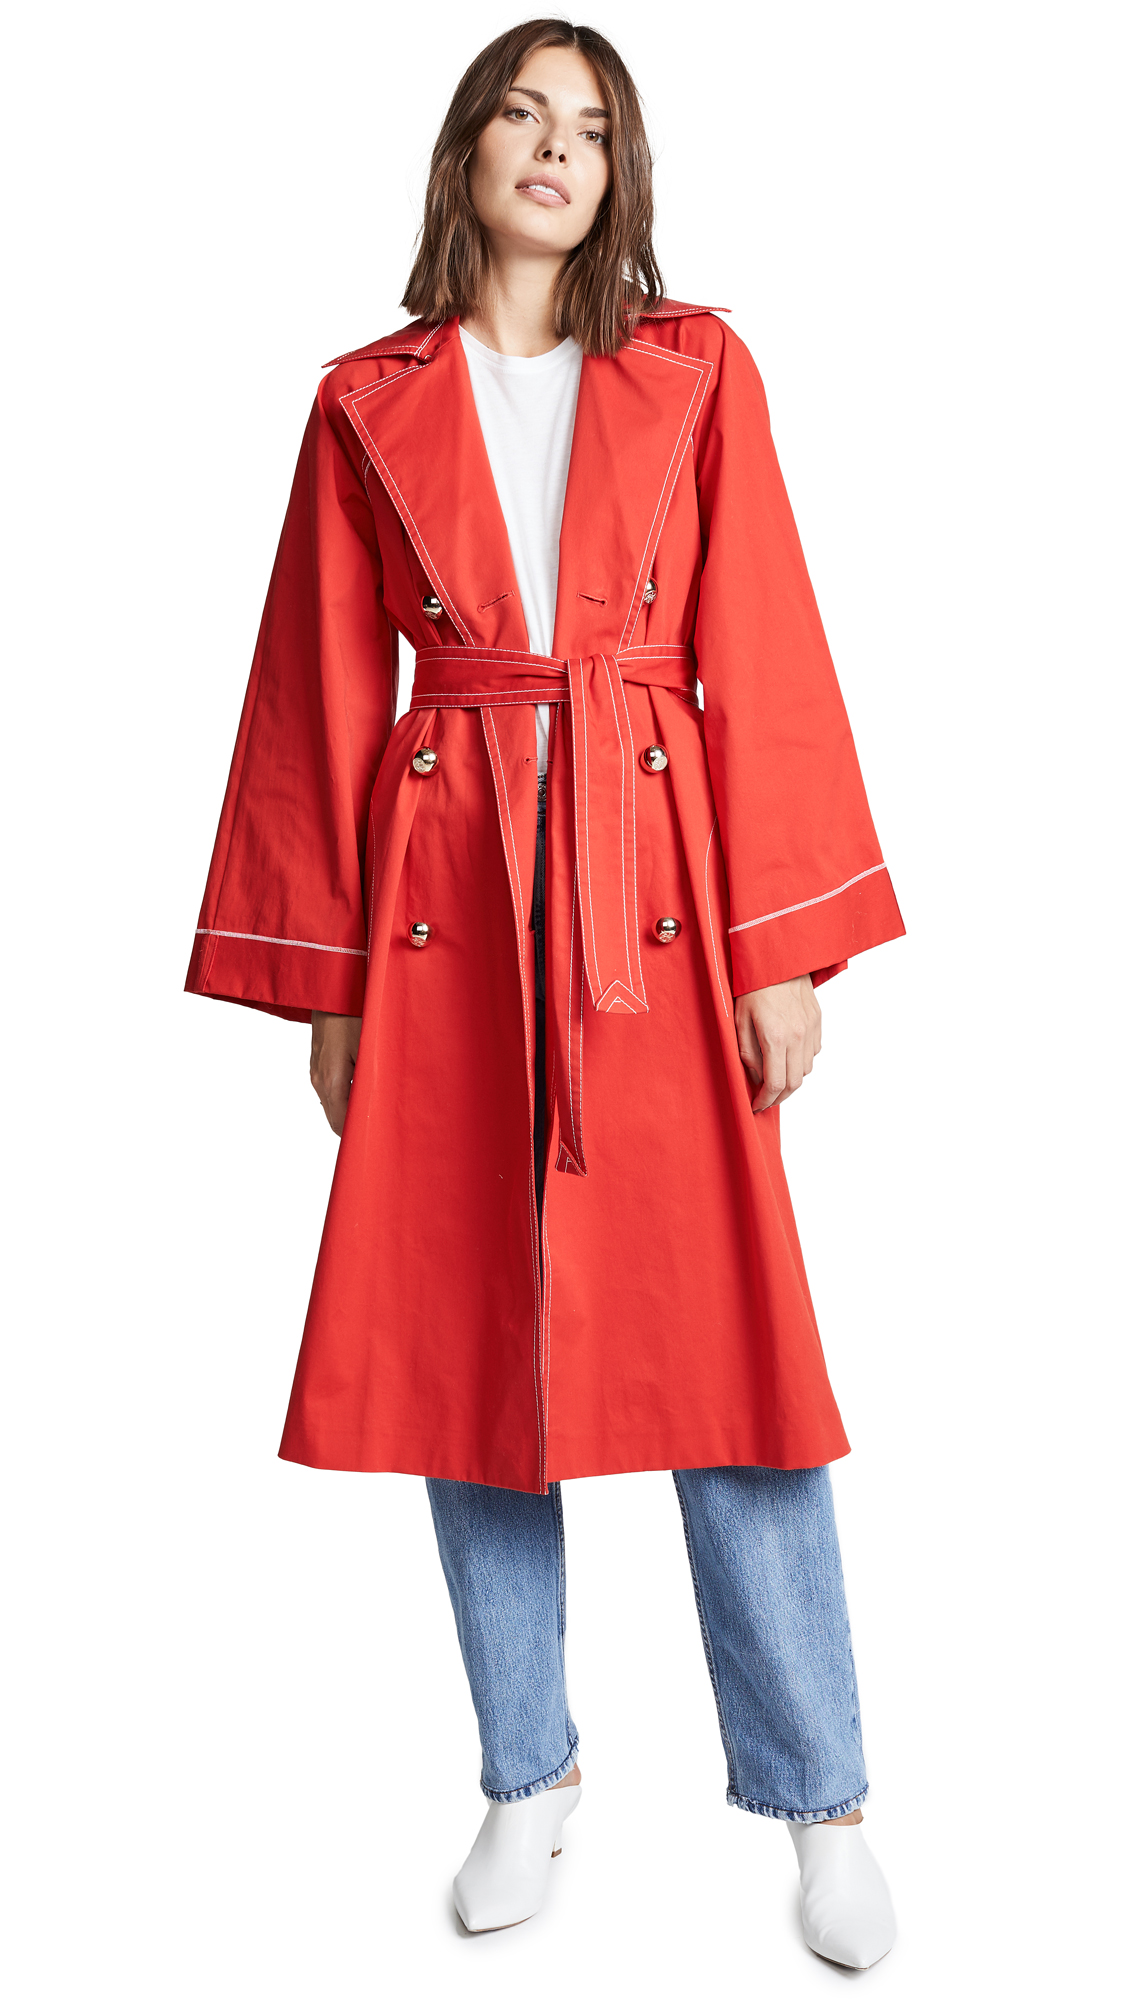 Nina Ricci Red Trench Coat - Red